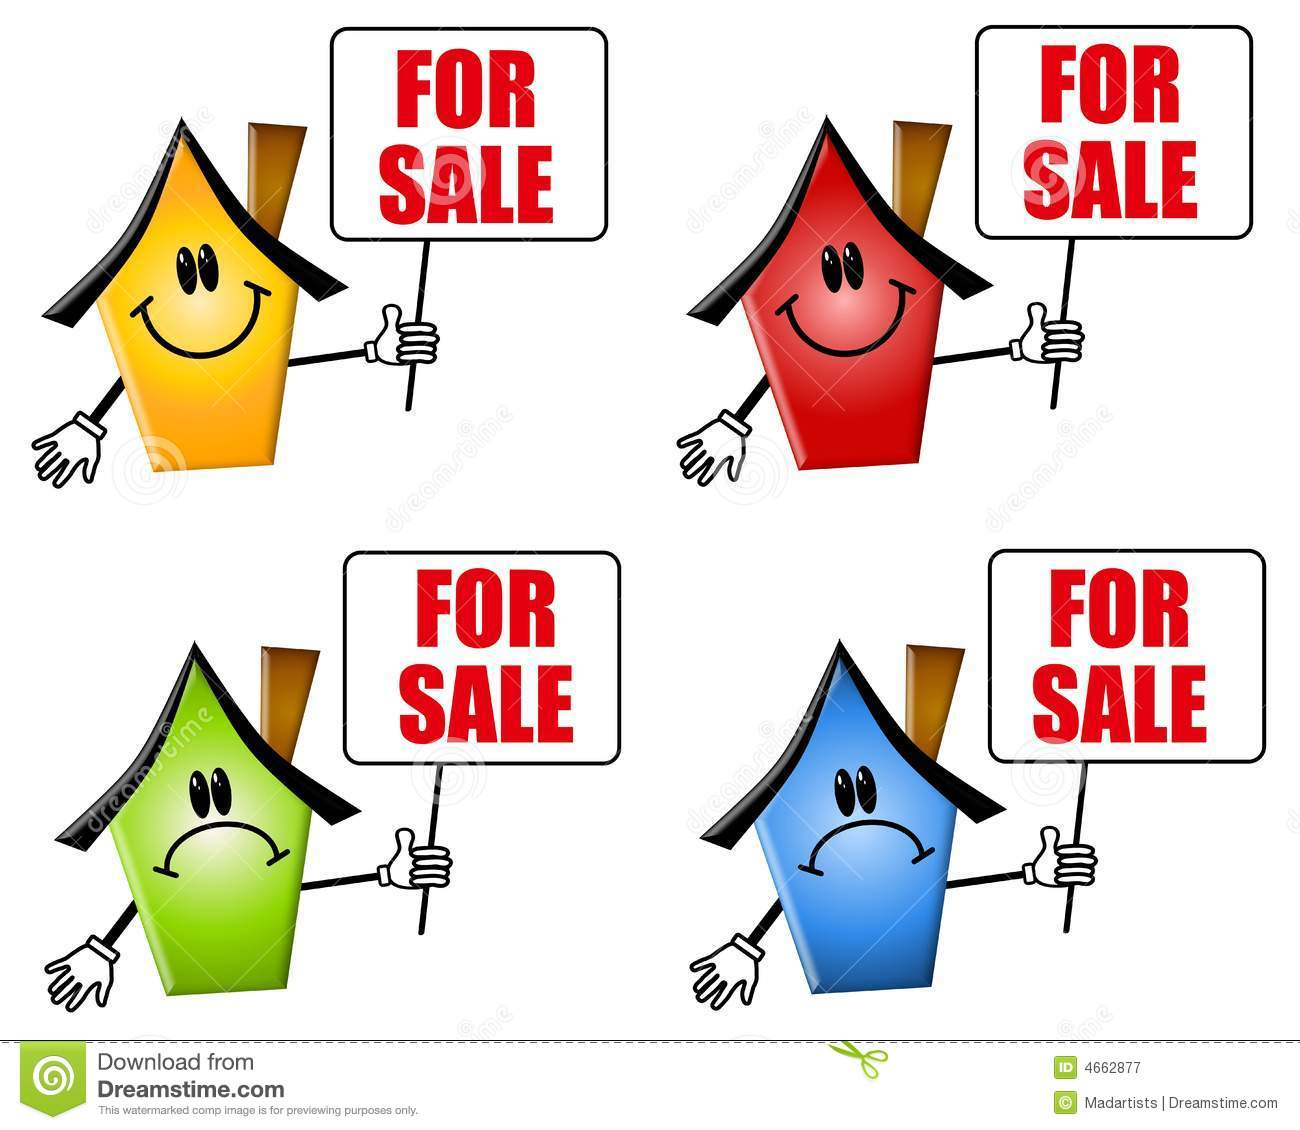 Free clip art homes for sale